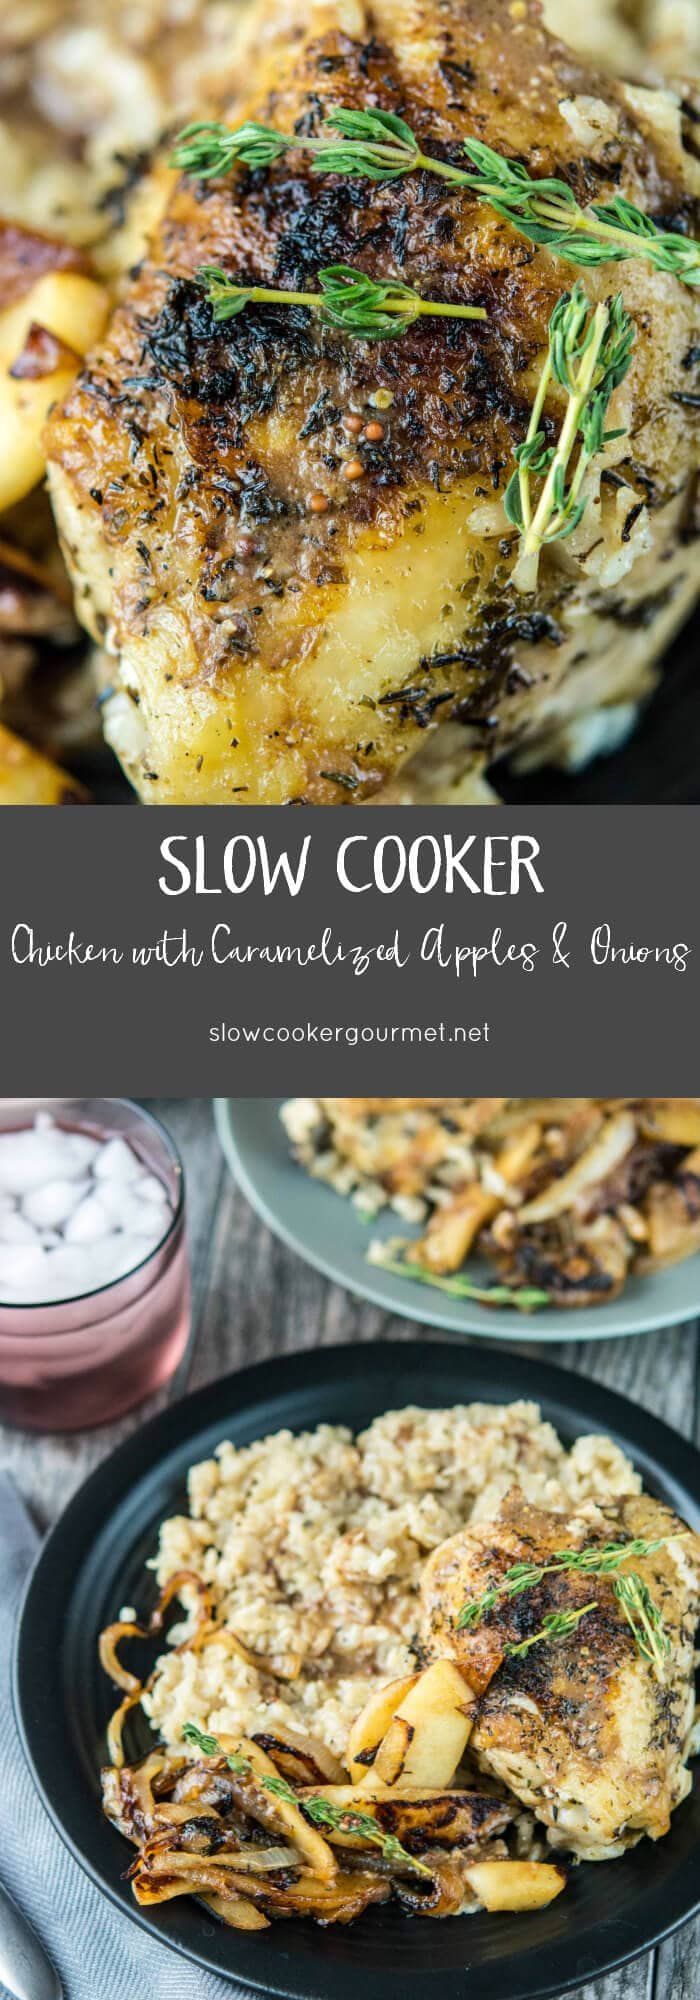 slow_cooker_chicken_with_caramelized_apples__onions_longin